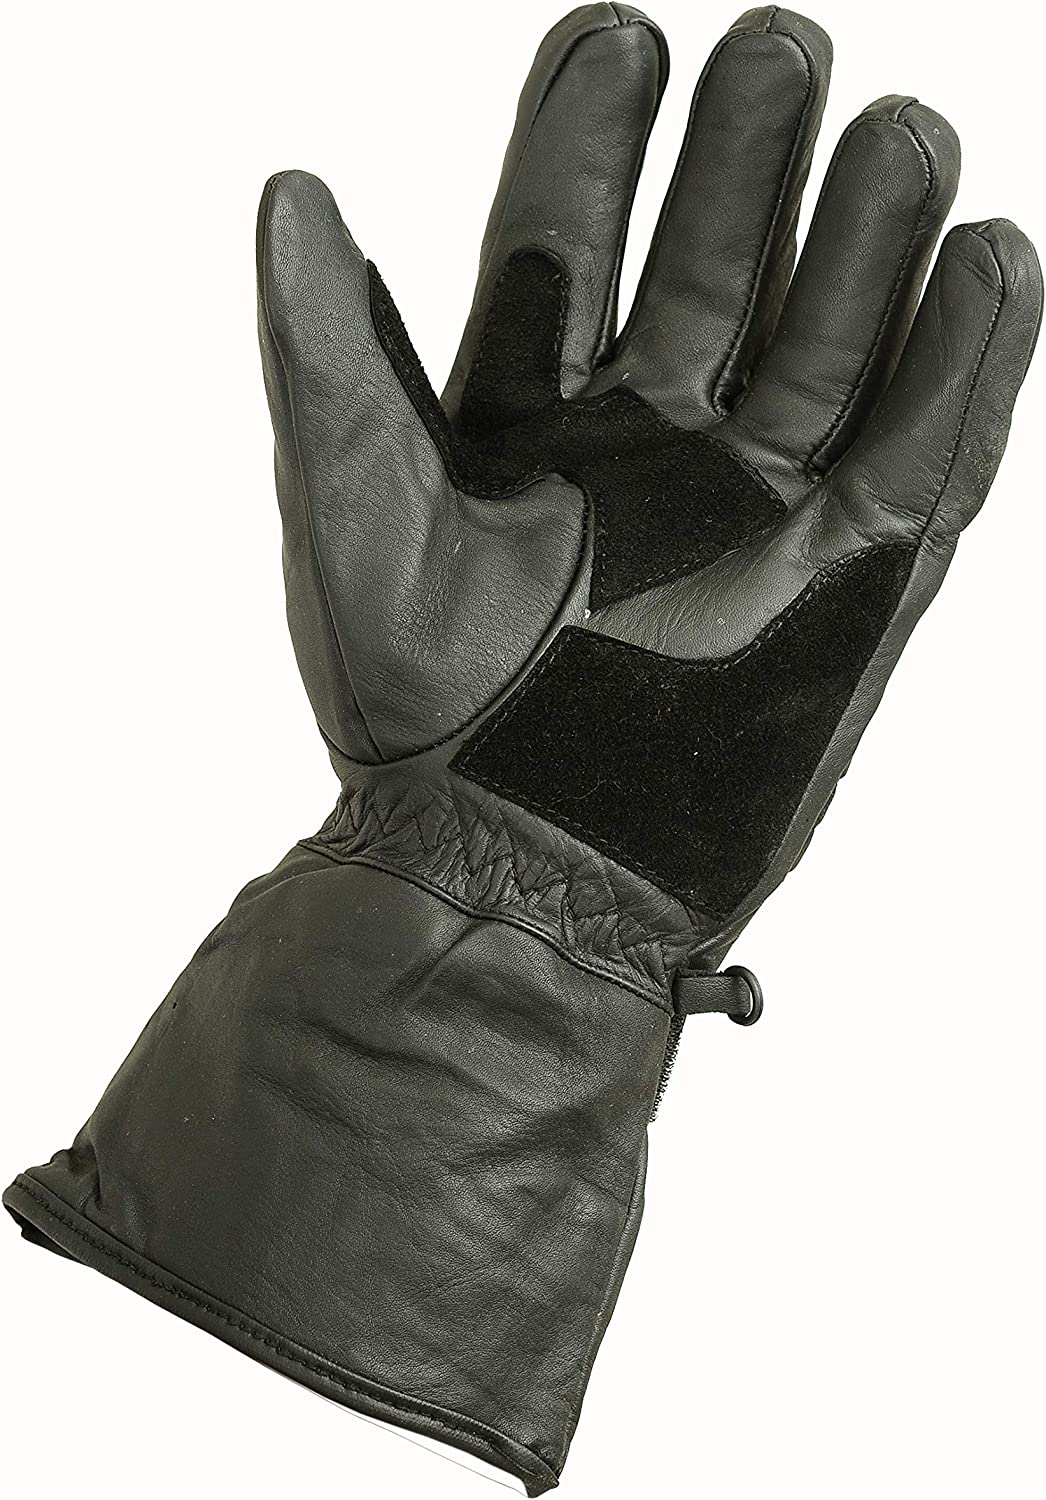 M Winter Leather Motorbike Gloves Reflective Waterproof Padded Thermal Black